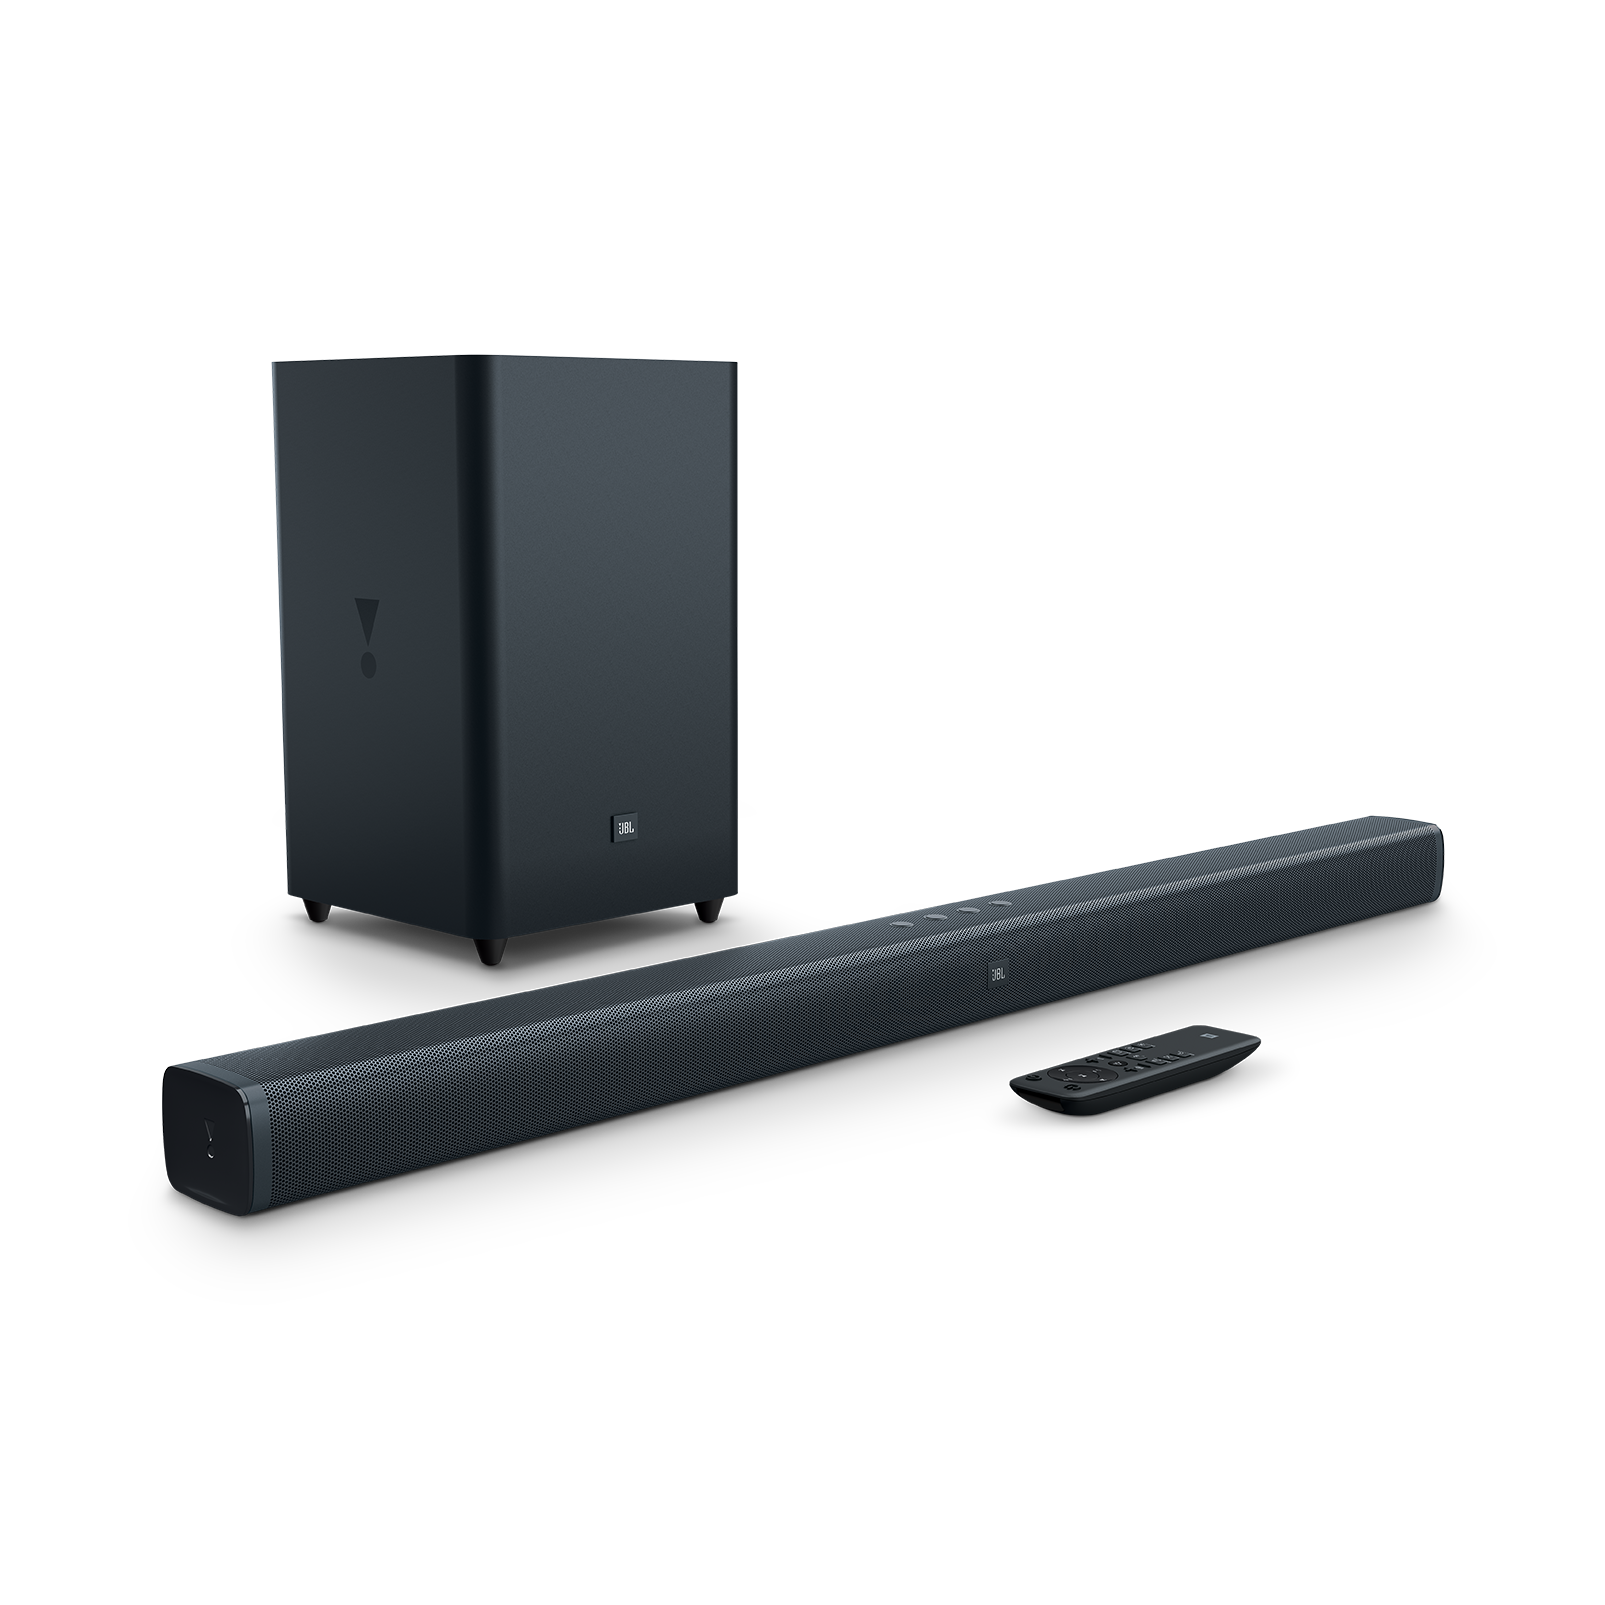 Jbl Bar 21 Channel Soundbar With Wireless Subwoofer Hook Up Diagram Home System Free Download Wiring Diagrams